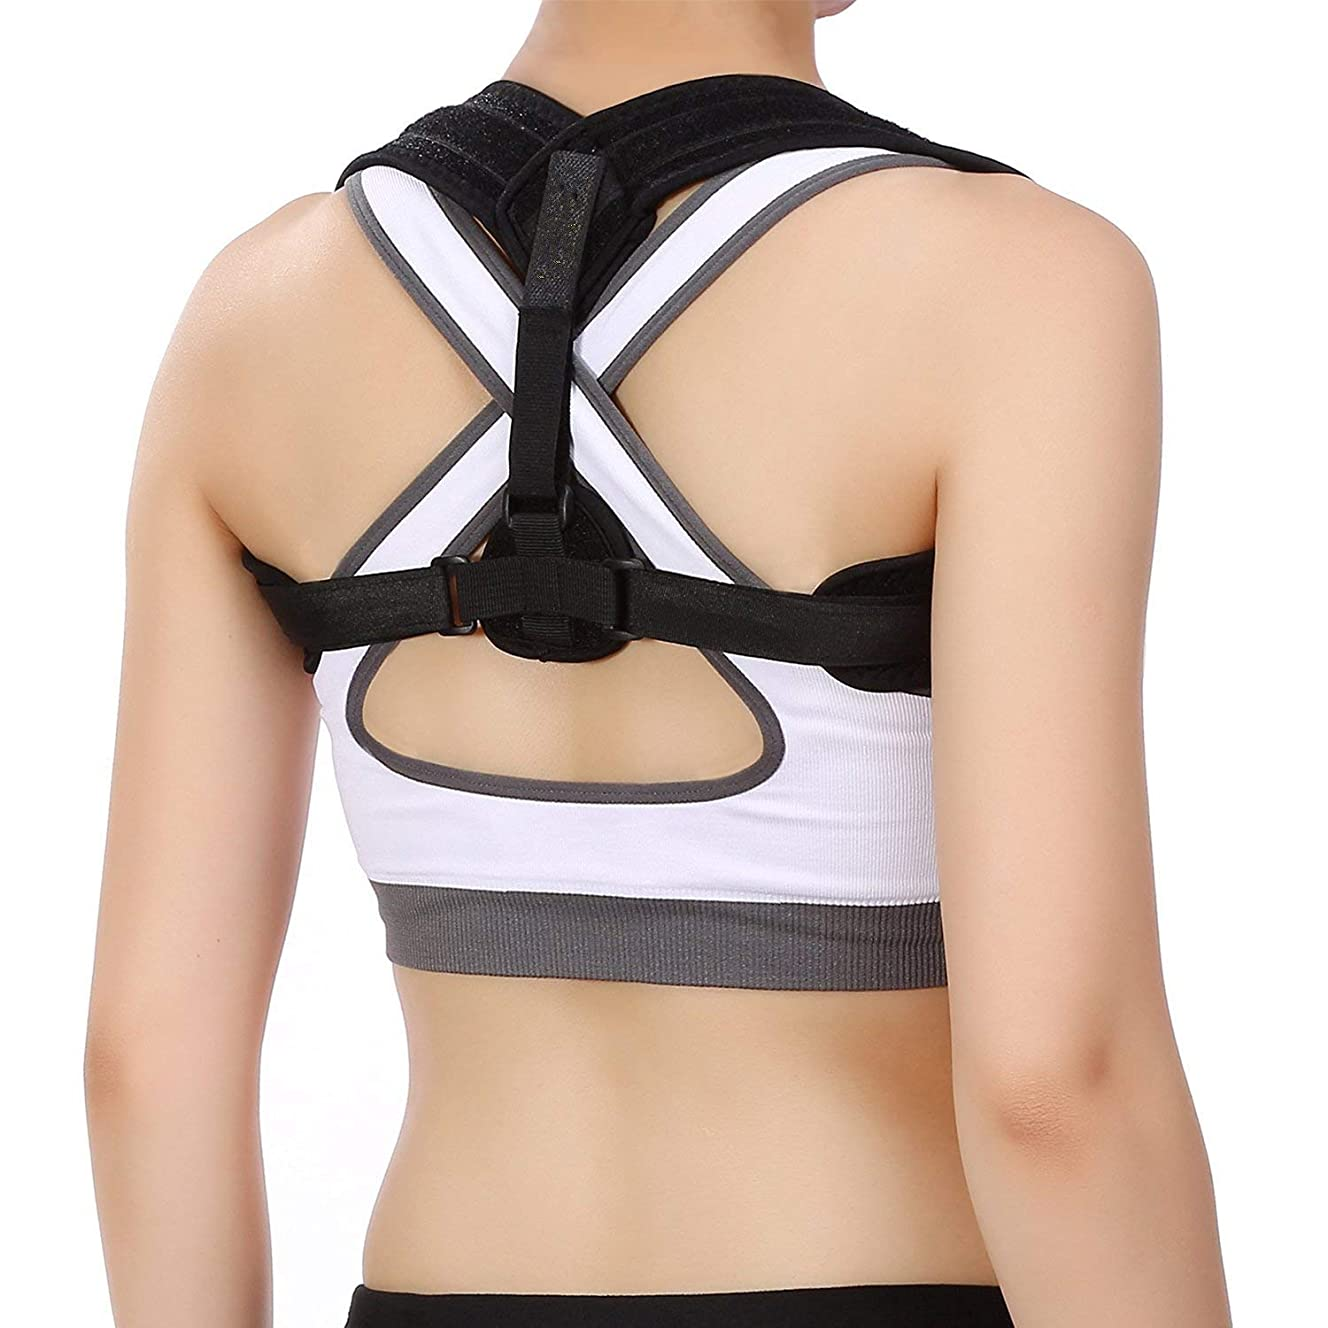 JOYTOUR Posture Correction Adjustable Clavicle Shoulder Upper Back Support Brace Improve Posture Correction for Women Men Kids Corrector De Postura